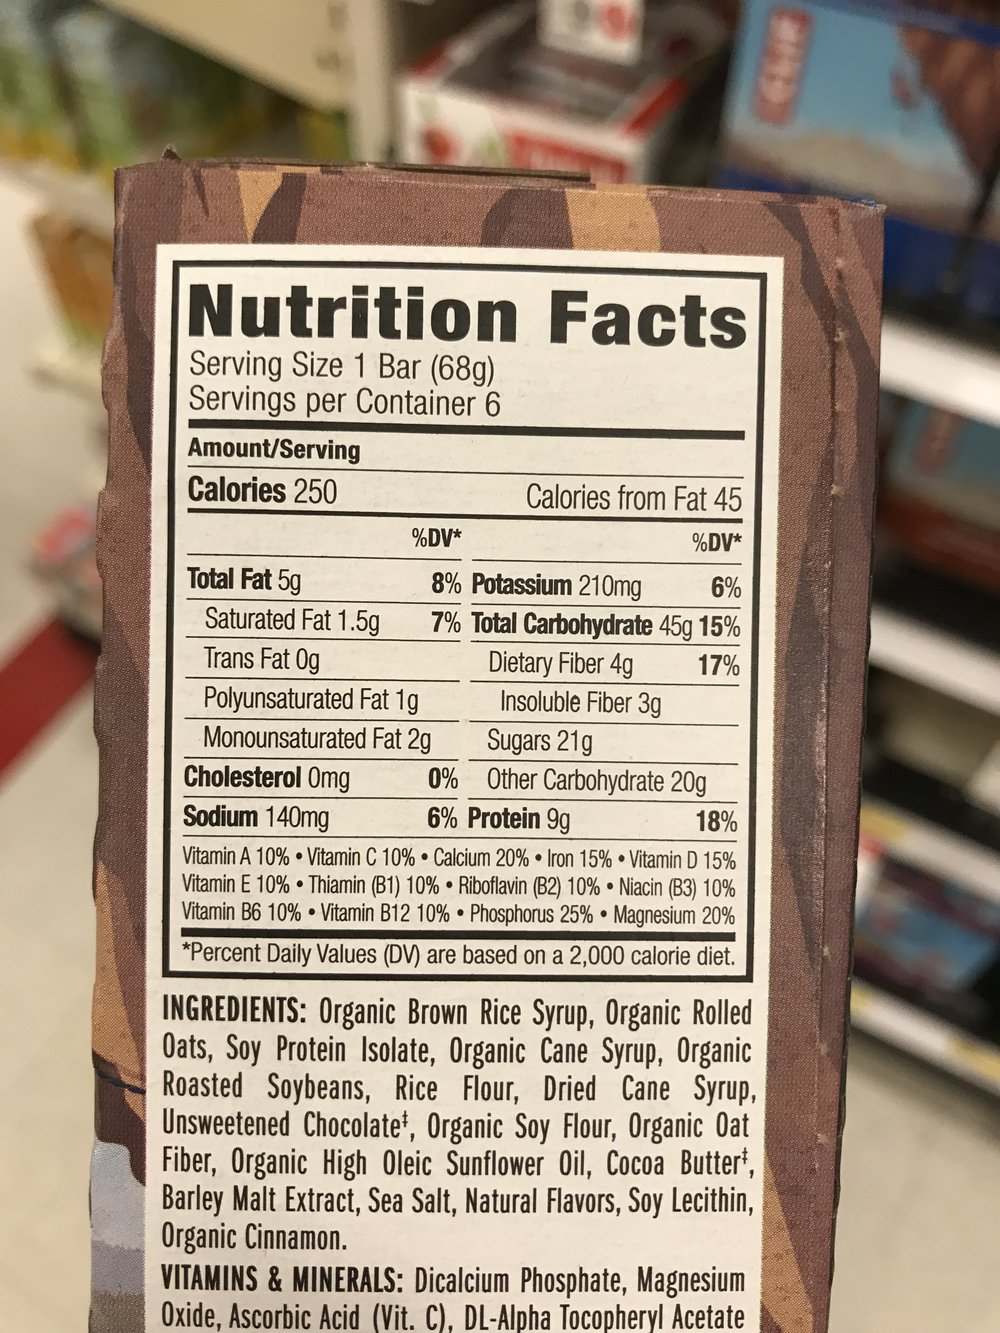 "Always Read the Nutrition Facts - If you look closely at the ingredients of the Clif Bar above, you'll see that the first ingredient is ""Organic Brown Rice Syrup,"" which is another way of saying ""sugar."" It's very convenient to have a bar if you're hungry, but beware of misleading branding. Always read the nutrition facts for sugar content, fat content, carbohydrates, etc. Companies like Clif, Larabar and PowerBar market their products to make them look healthy when in actuality they're more like candy bars. Quest is a company that makes some pretty decent bars and you may even see me snacking on them in the office from time to time. At my clinic we also offer our own ""Advanced Health Systems"" bars that have 15g of protein and still manage to taste great even with little sugar. And in reality none of the bars mentioned are much more easily portable than a good hard-boiled egg, a bag of your favorite nuts or seeds, or a container of Greek yogurt."